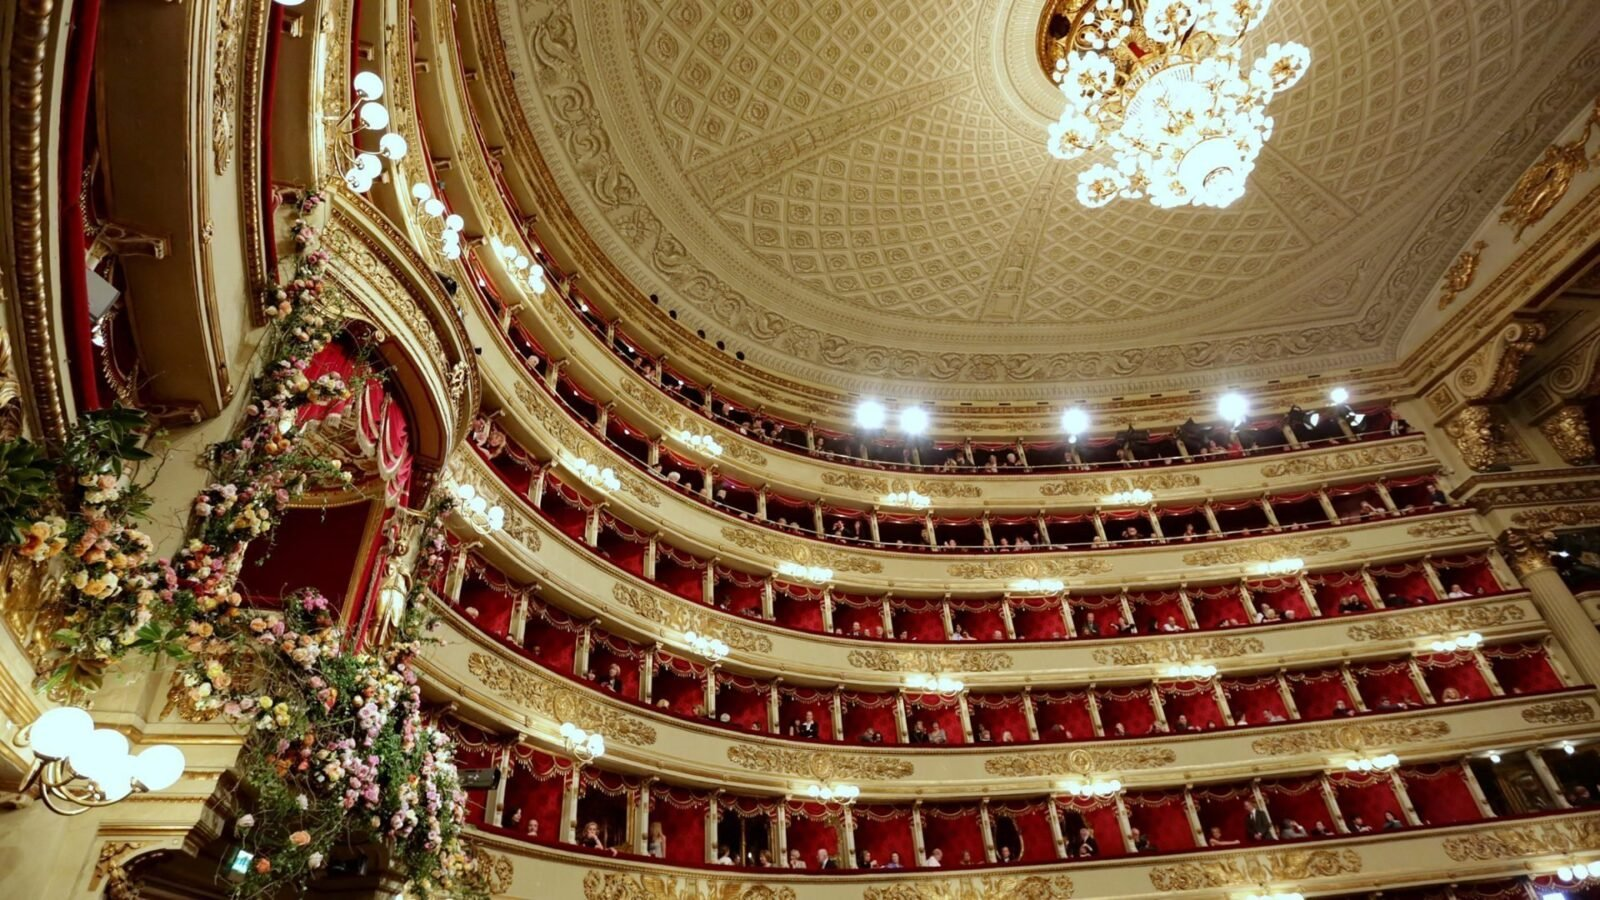 A Box at Teatro alla Scala